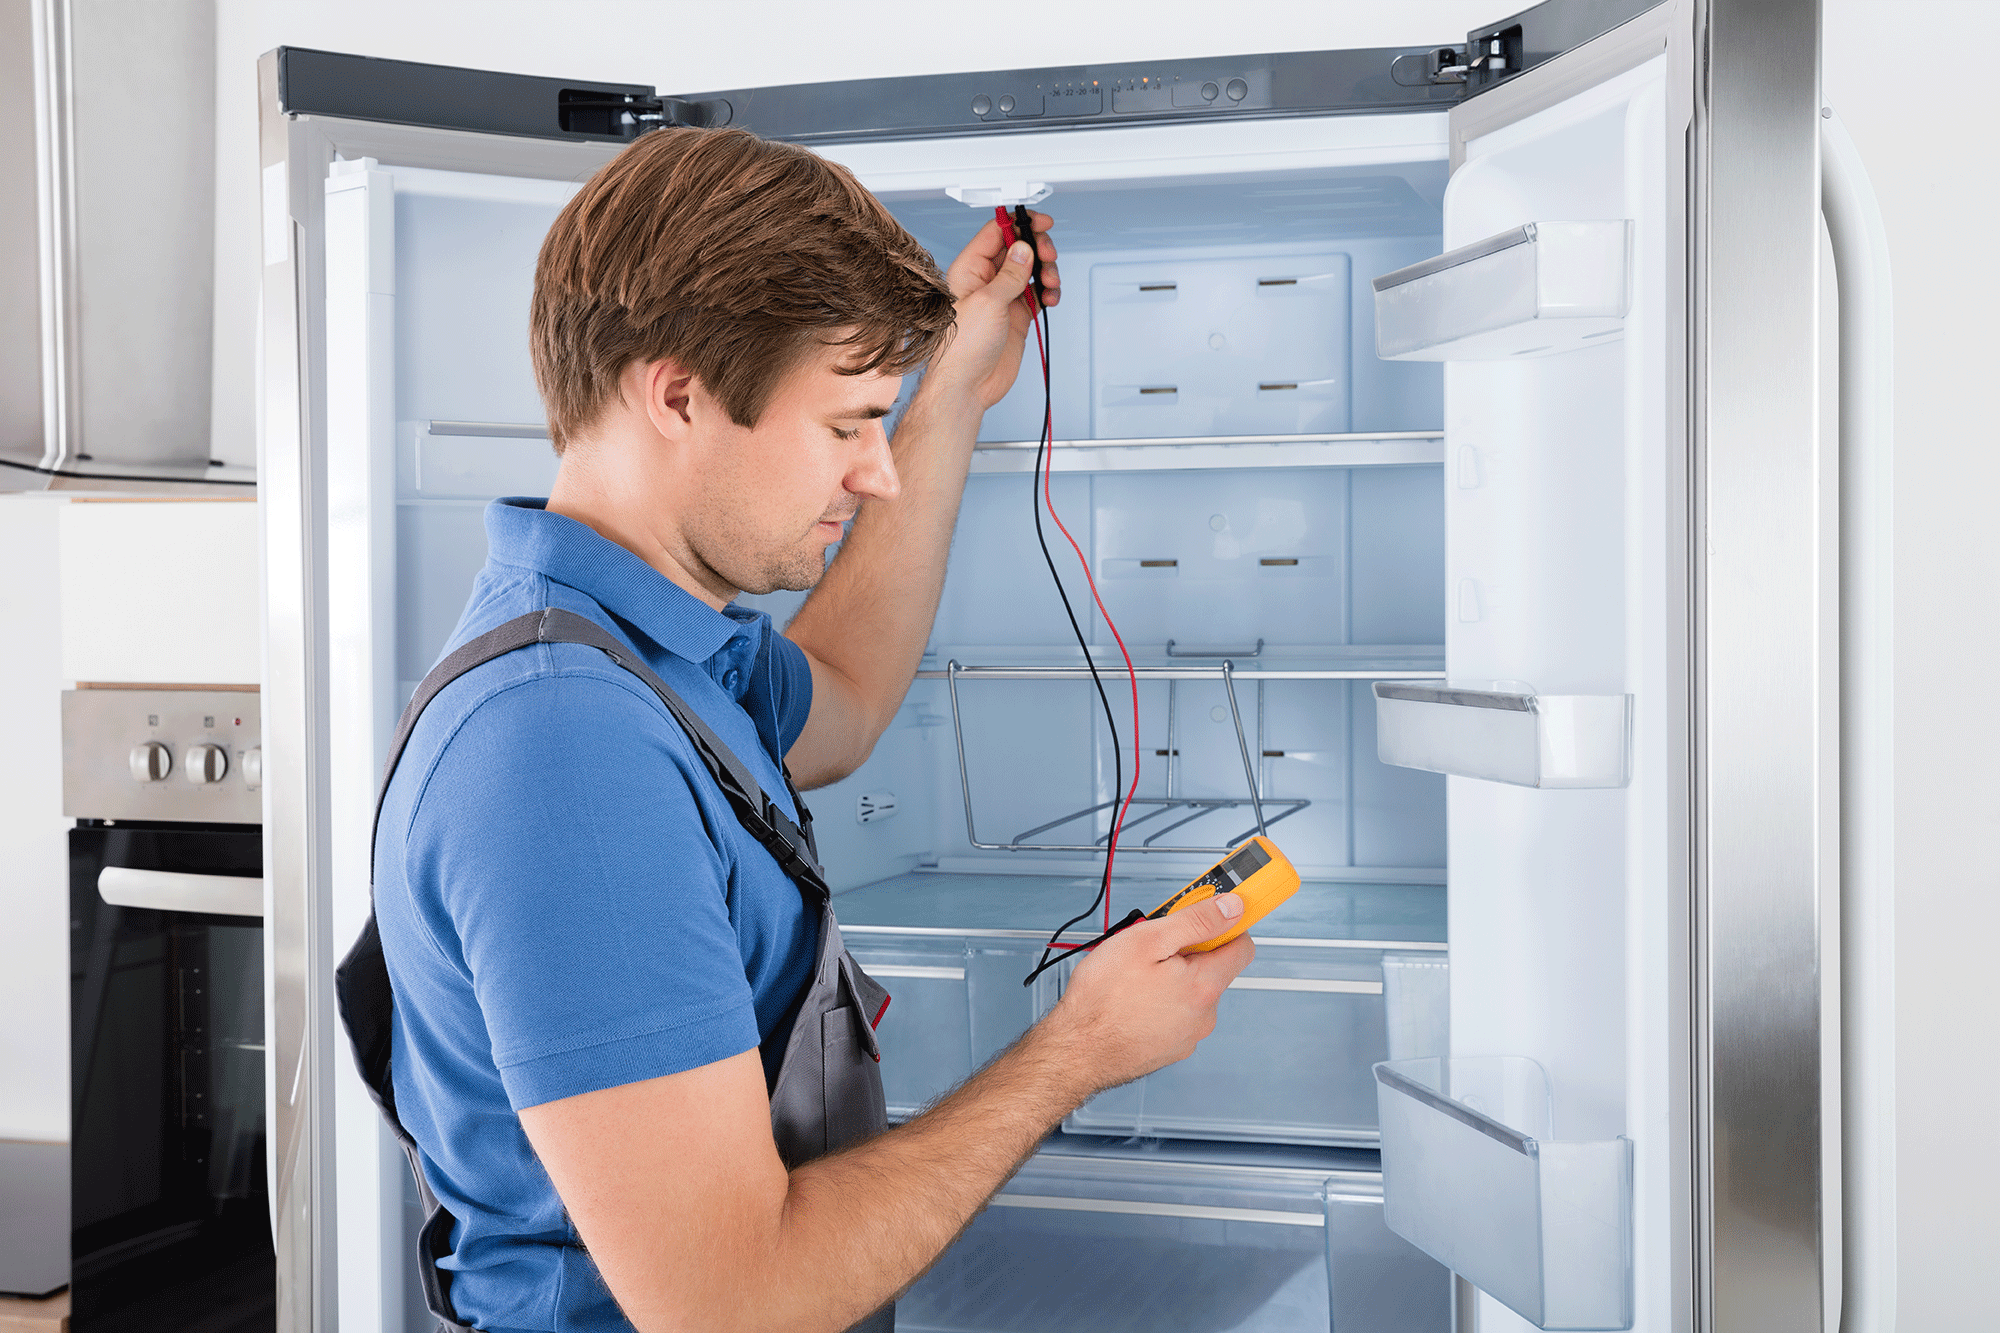 Fridge Repairs - One of the key appliances of a modern home, when you have an issue with your fridge, you need it fixed ASAP. John Hull Electrics offers in home fridge repairs on the Central Coast, our trained technicians carry replacement parts in their service vans so we can repair most common faults on the first visit to your premises. Our team has over 30 years experience and depending on what time you call we can do same or next day service on the Central Coast.